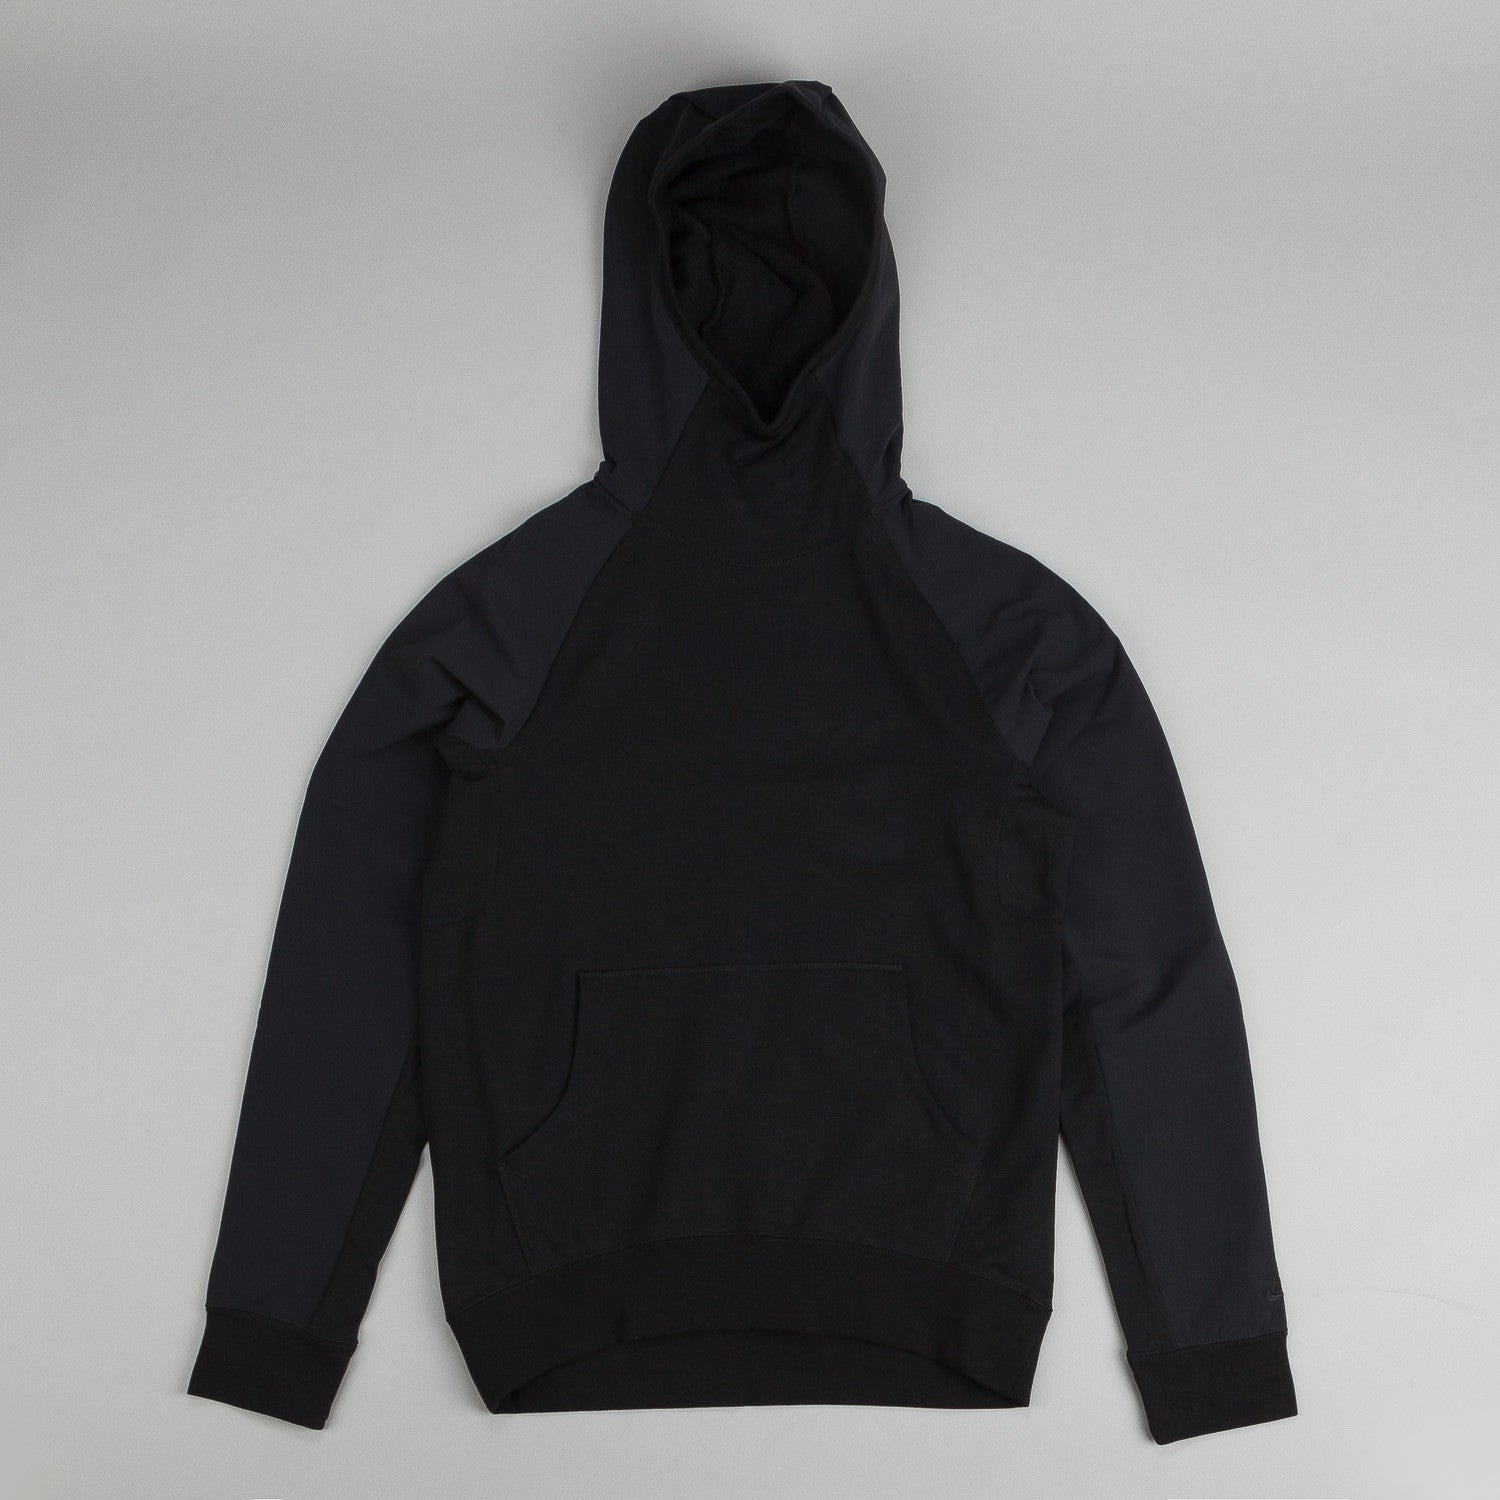 Nike SB Everett Overlay Hooded Sweatshirt Black / Black